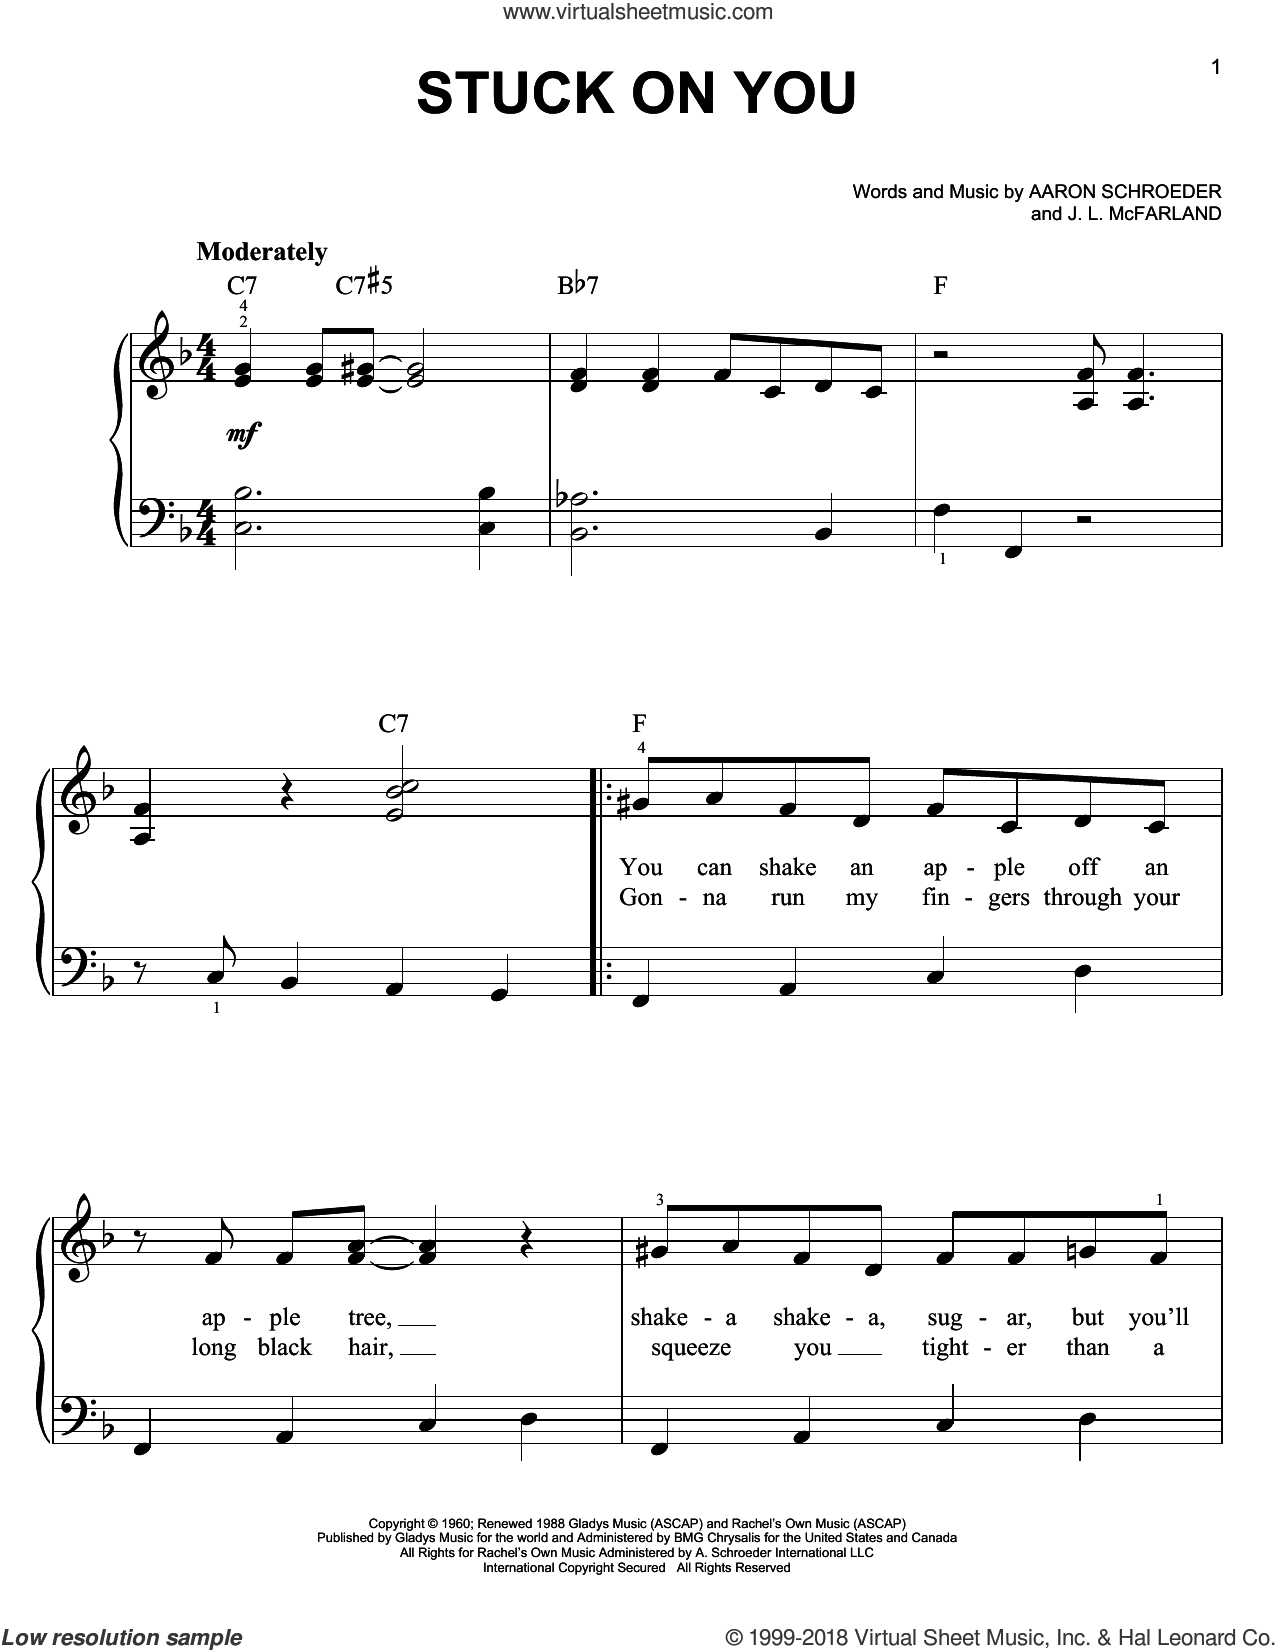 Stuck On You sheet music for piano solo by Elvis Presley, Aaron Schroeder and J. Leslie McFarland, easy skill level